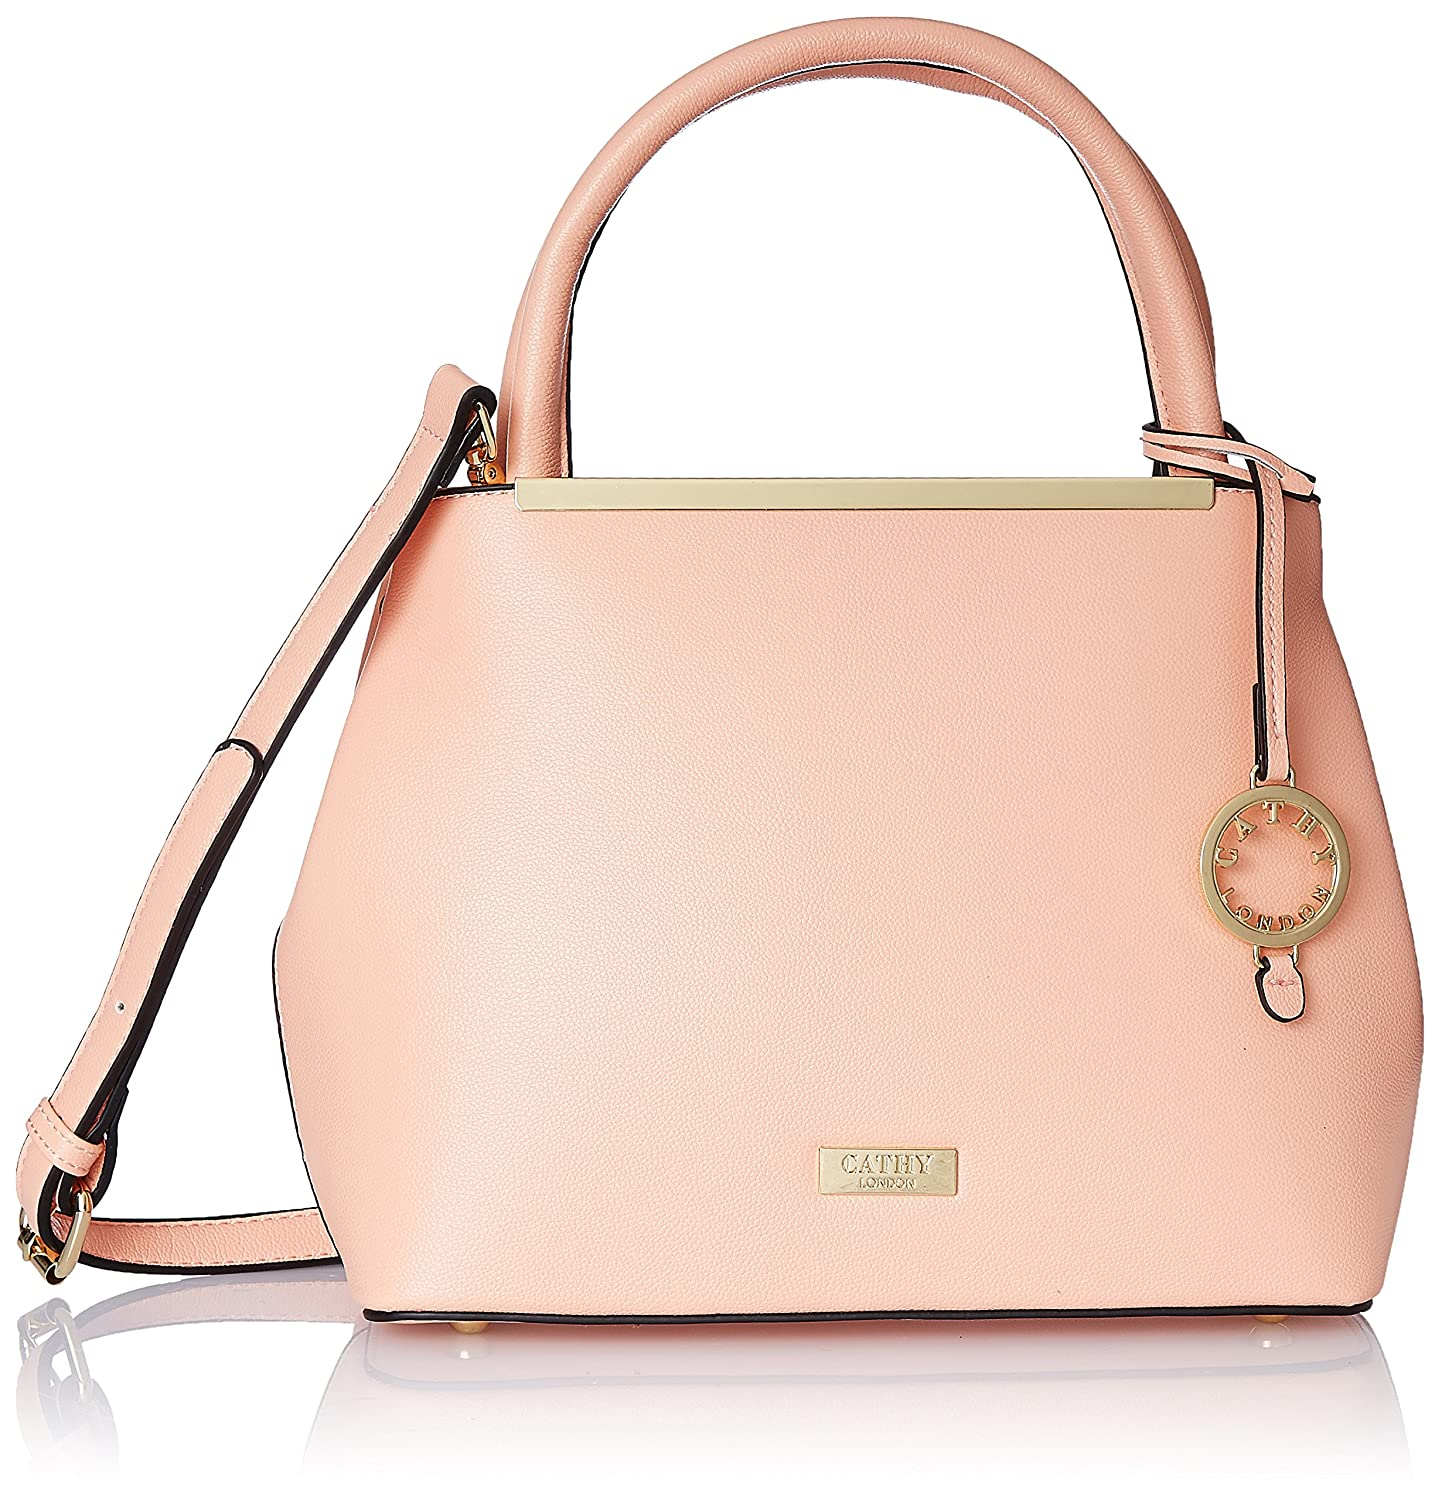 34240ac569 Cathy London Women's Handbag, Colour- Peach, Material- Synthetic Leather:  Amazon.in: Shoes & Handbags